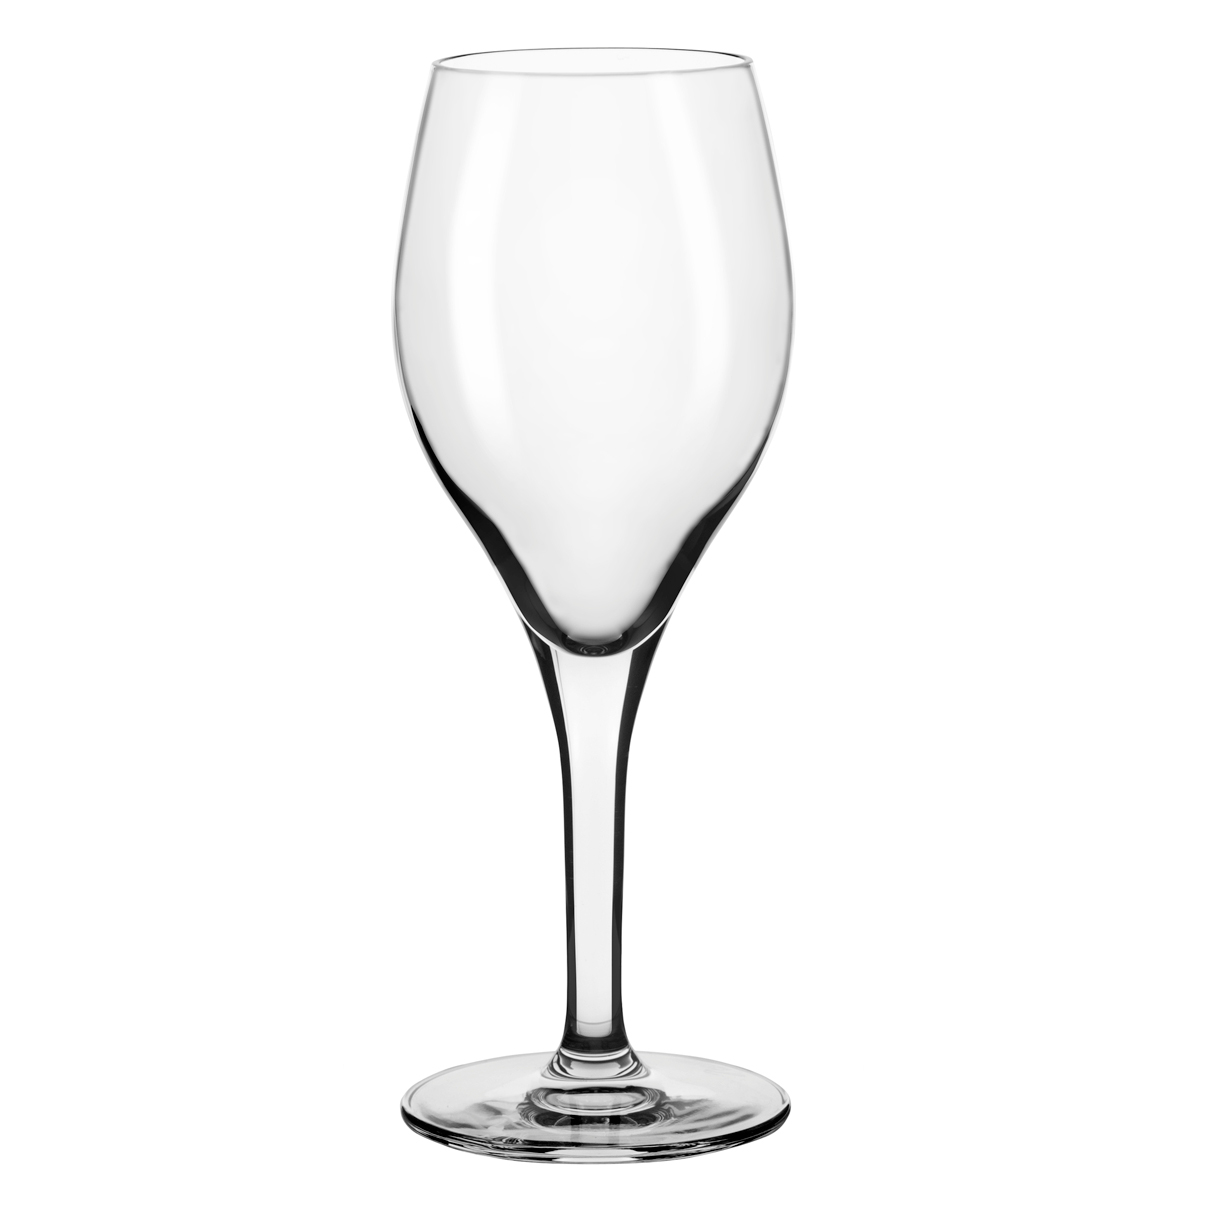 Libbey Glass 9140 glass, wine